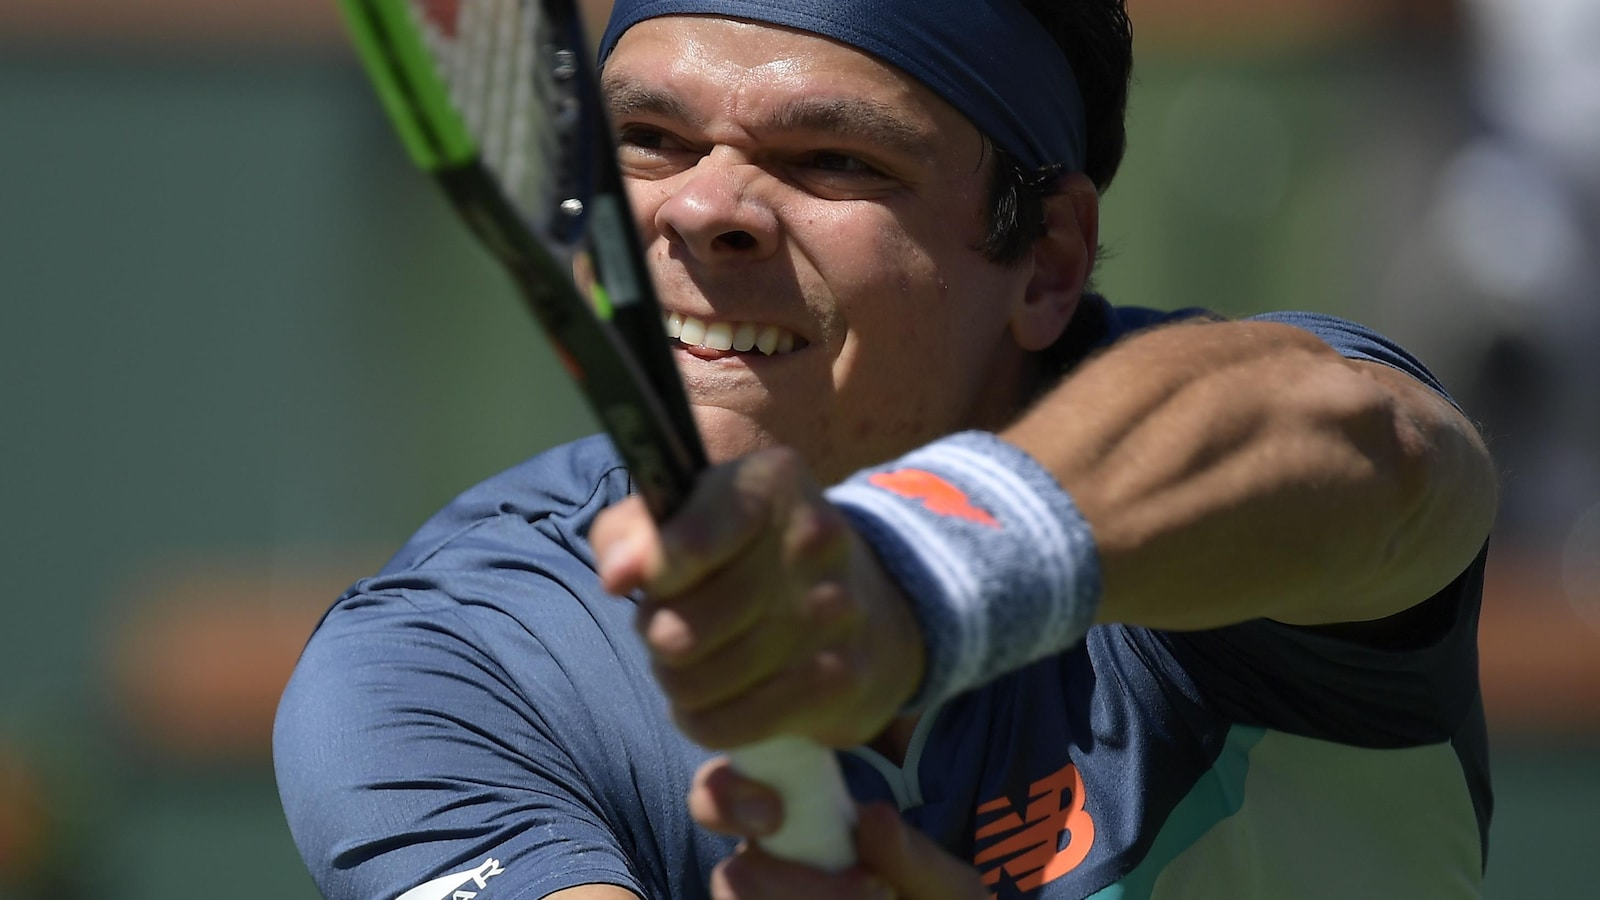 Milos Raonic en action contre l'Autrichien Dominic Thiem, en demi-finale du tournoi d'Indian Wells.